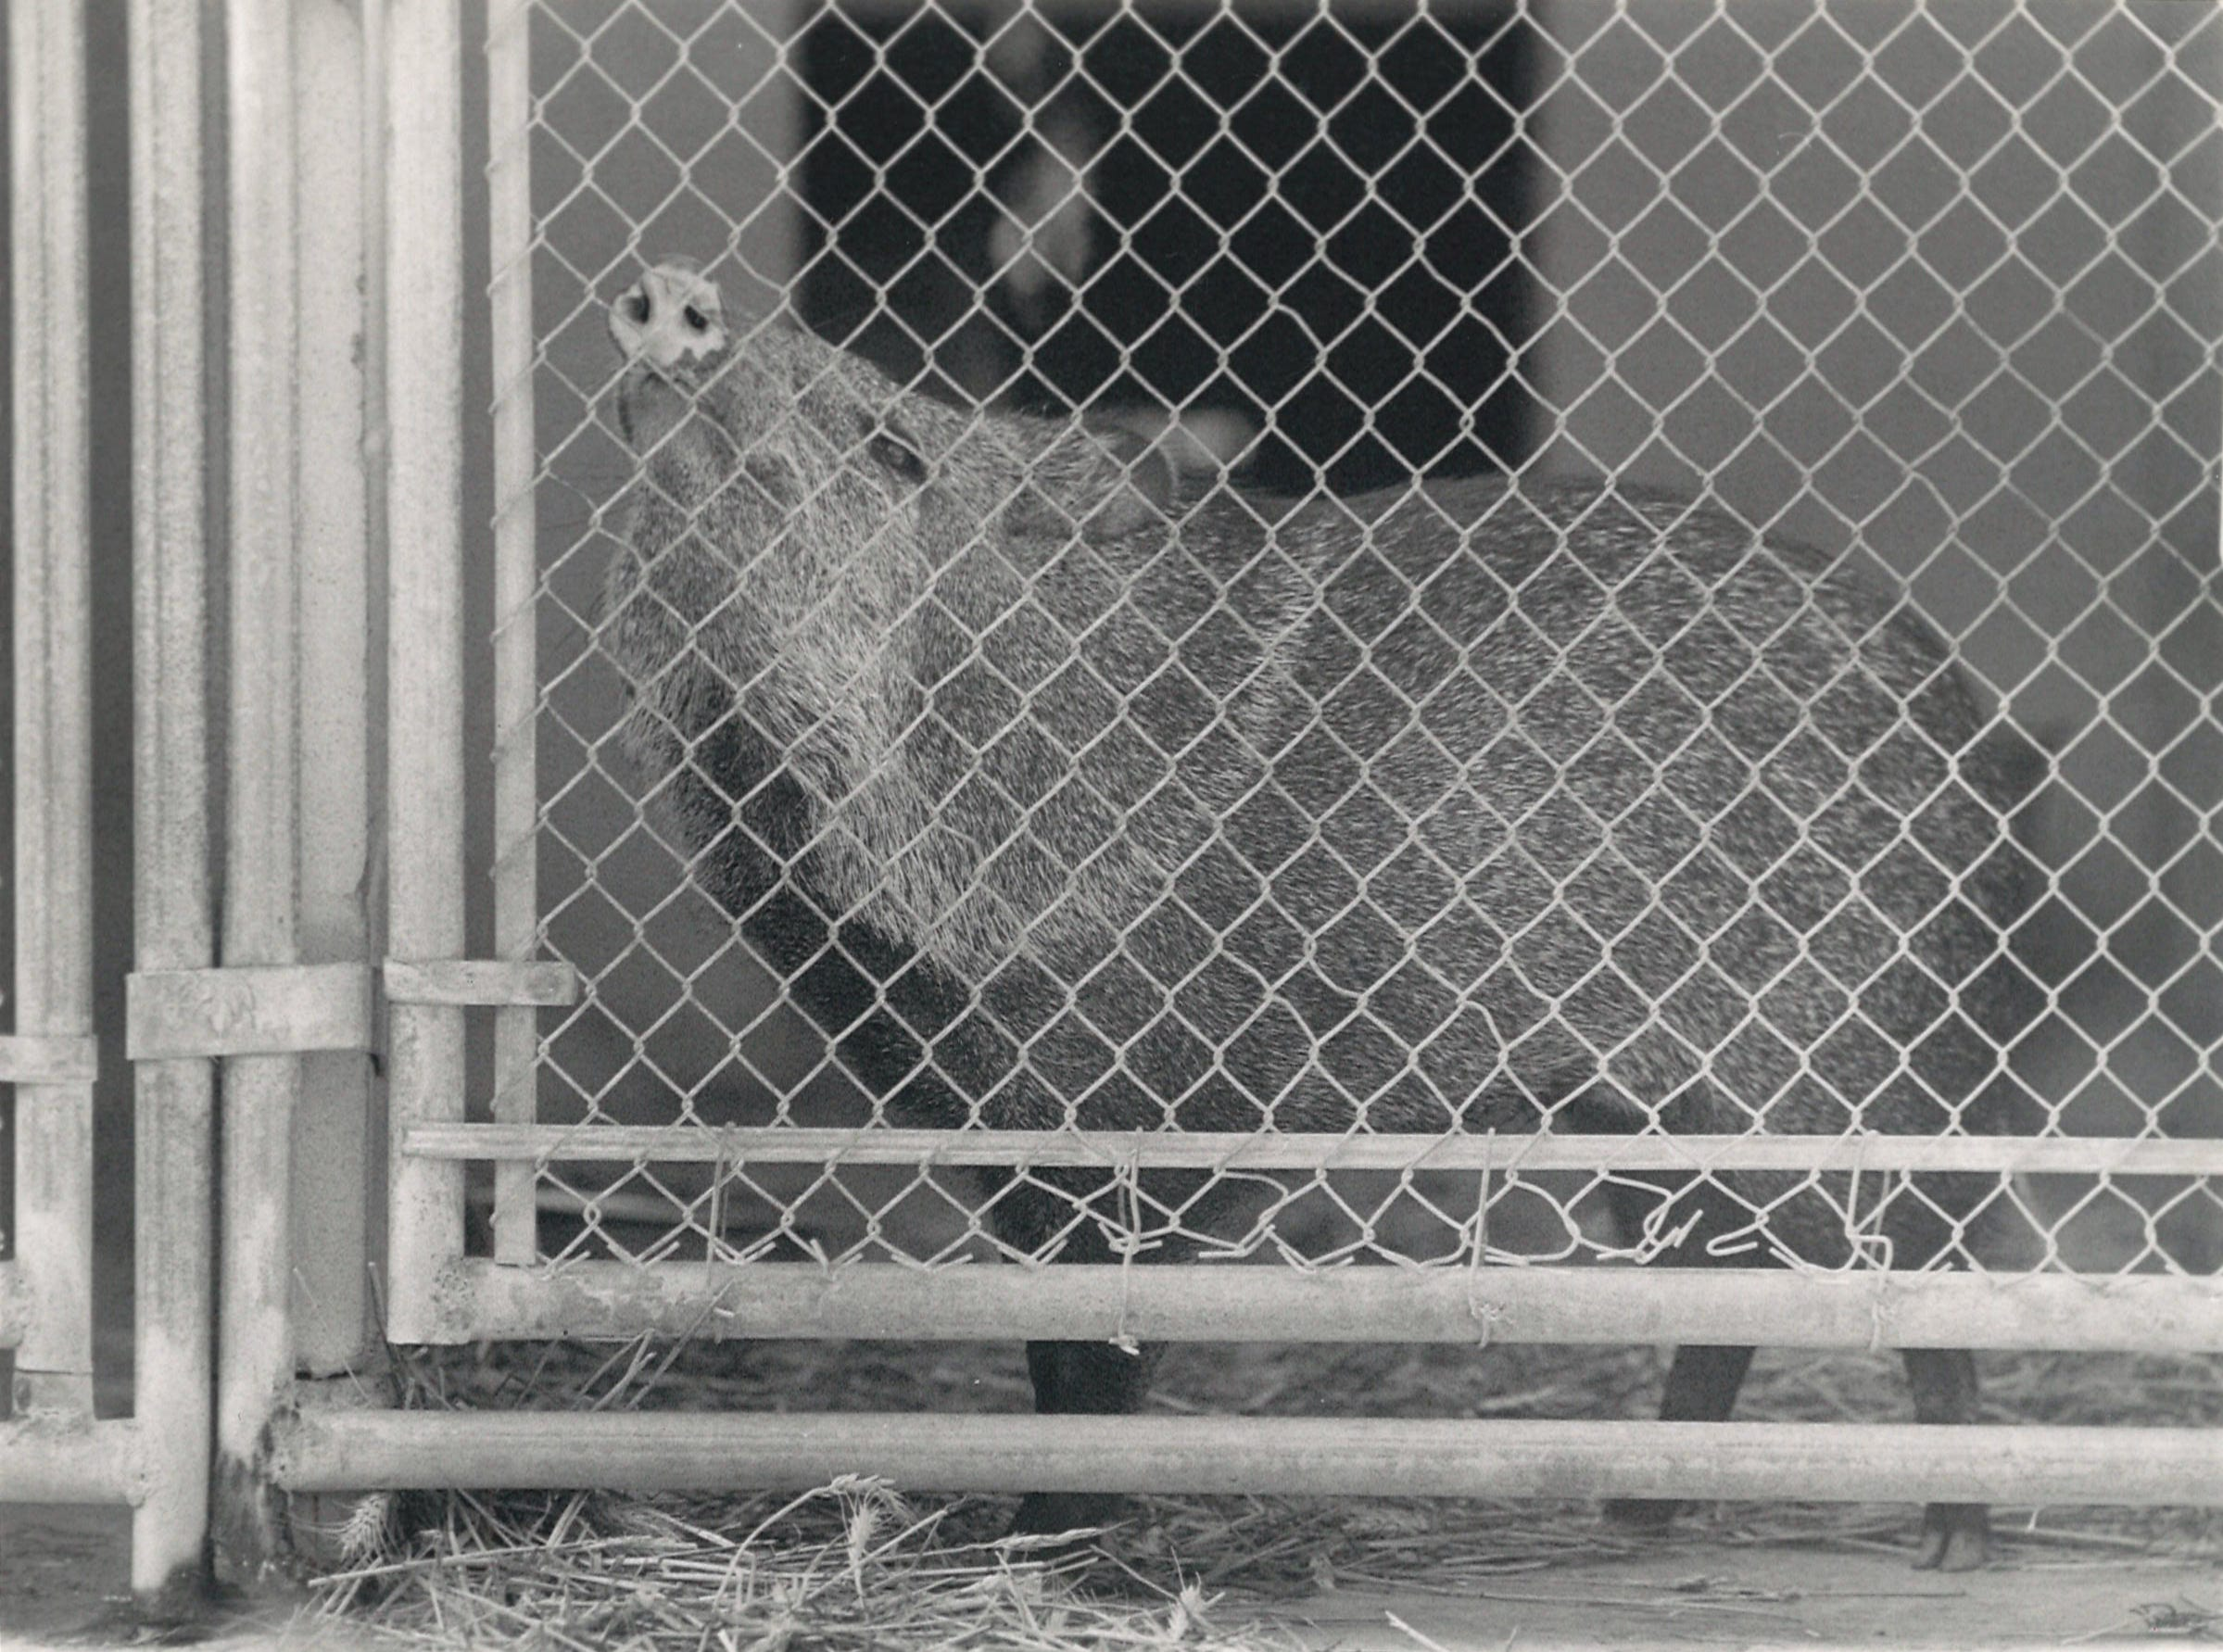 George the javelina at Corpus Christi Animal Control offices in May 1989 before he was released on the King Ranch. George was hand raised by Jan Eskew. He was neutered, de-scented and had his tusks removed.